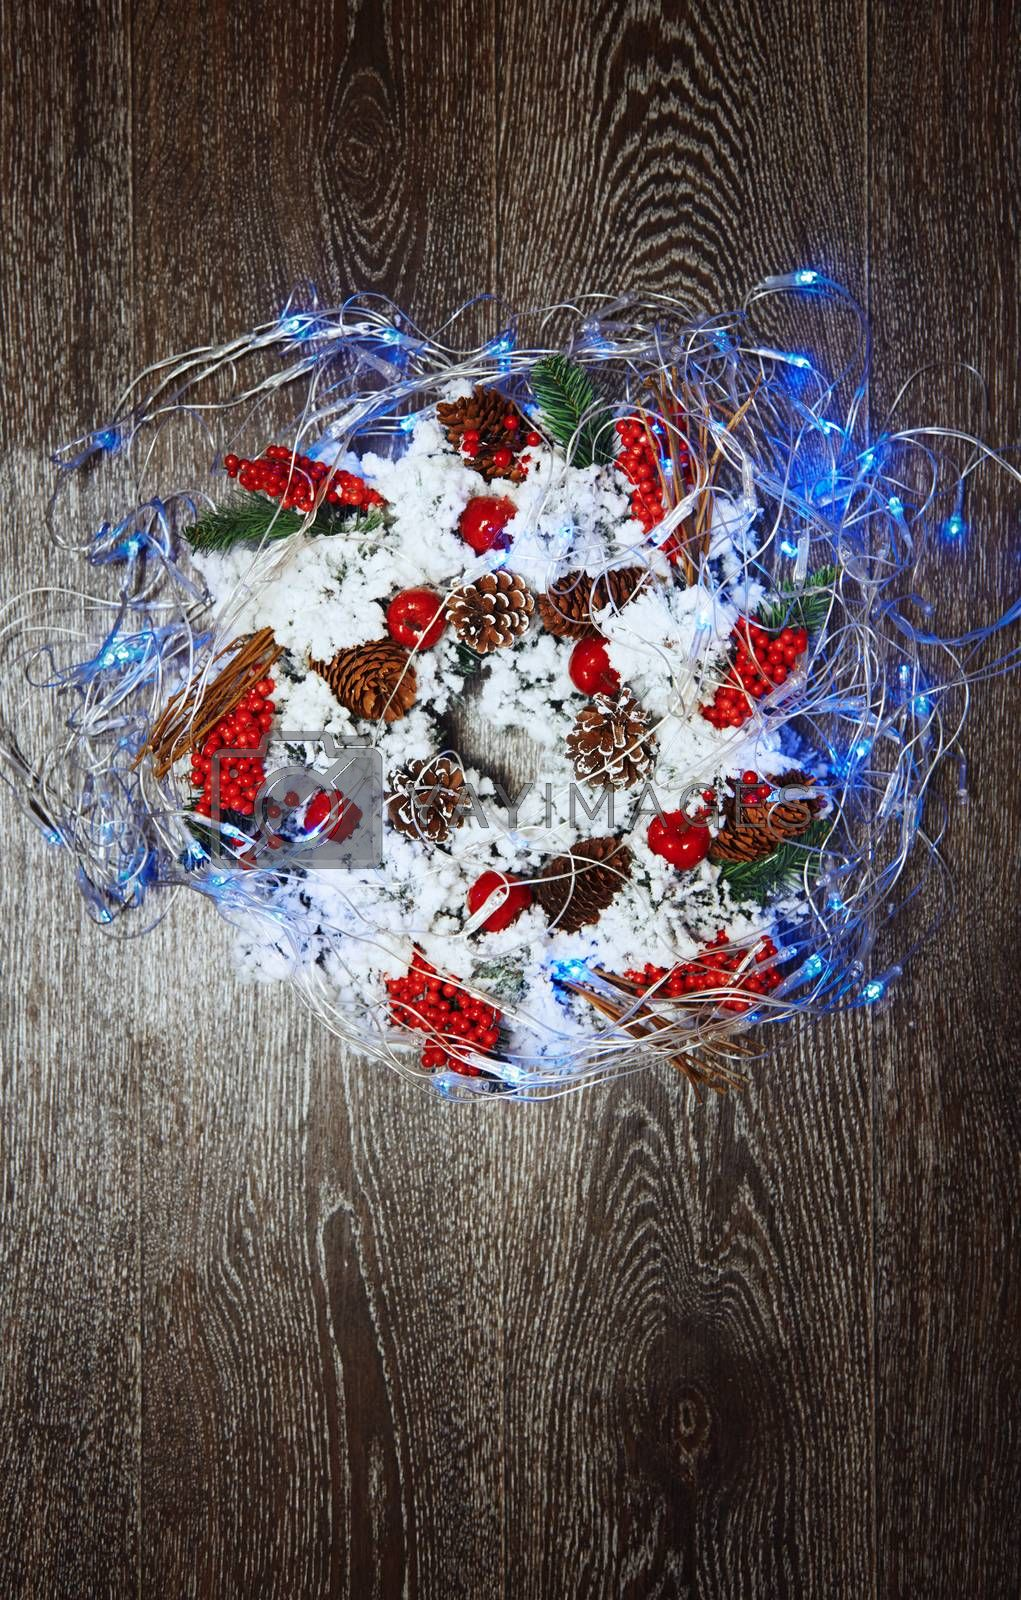 Christmas wreath and light on a hardwood background